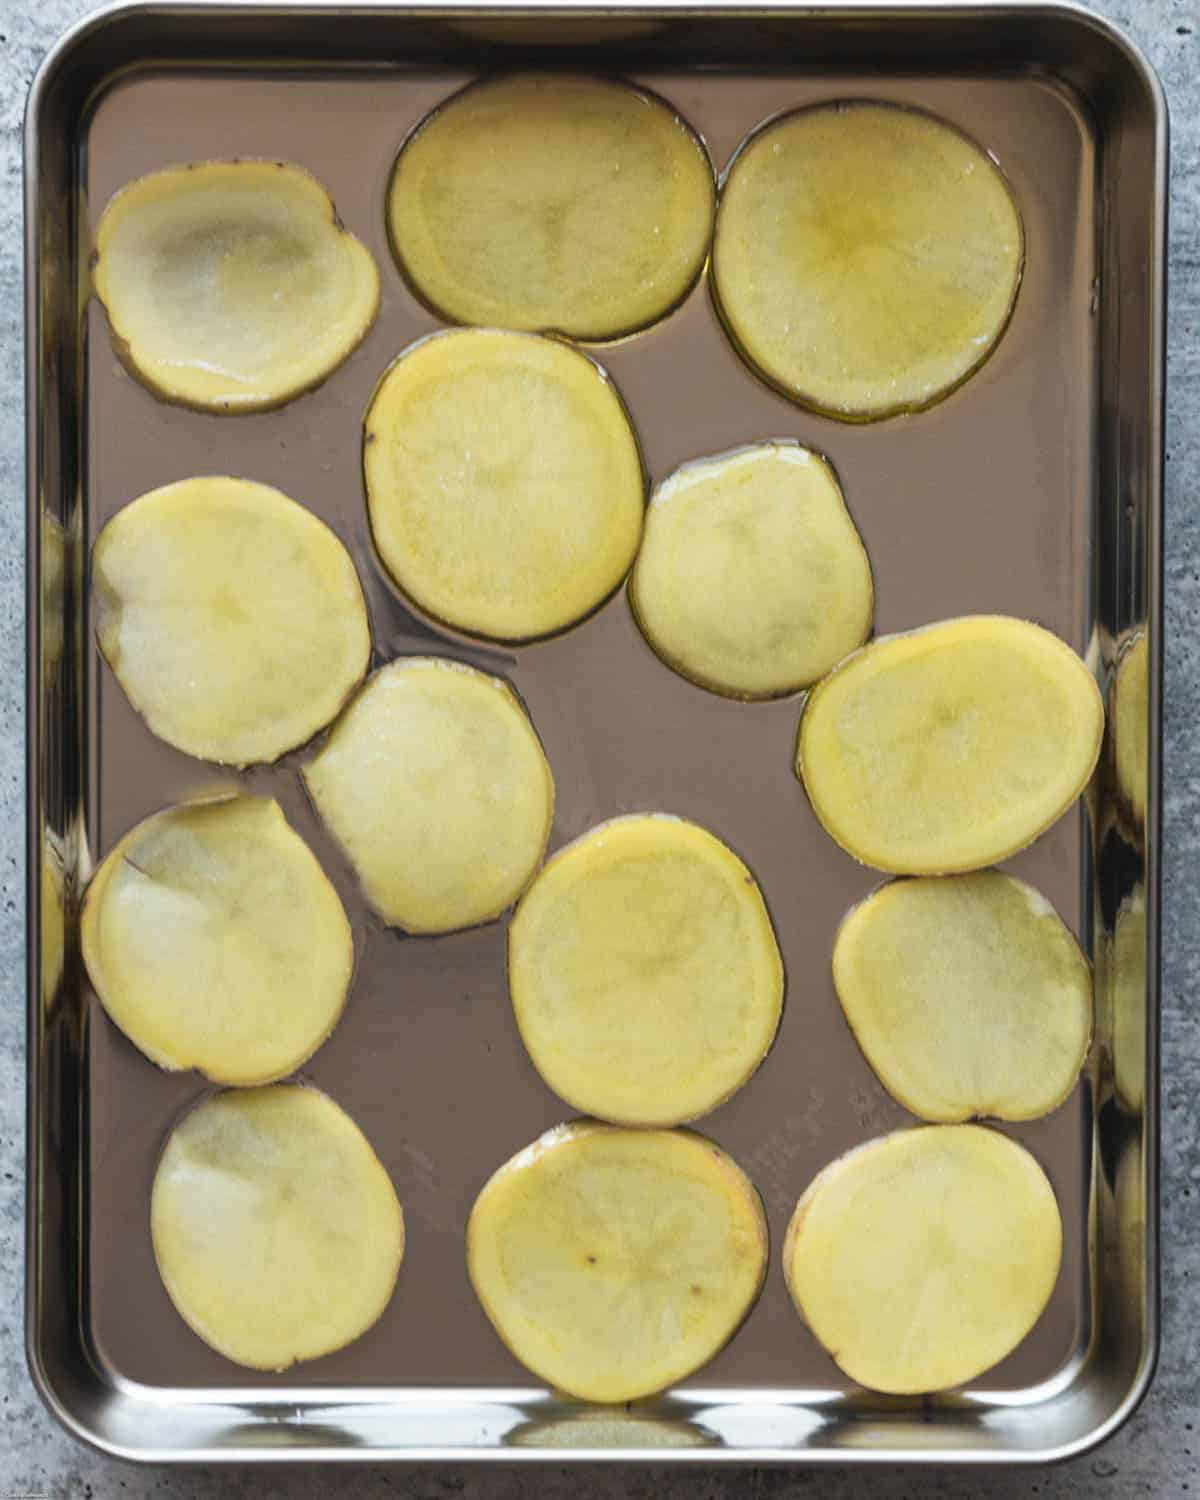 Thinly sliced potatoes on a baking sheet with a thin layer of oil. Ready to bake in the oven to make homemade baked potato chips.